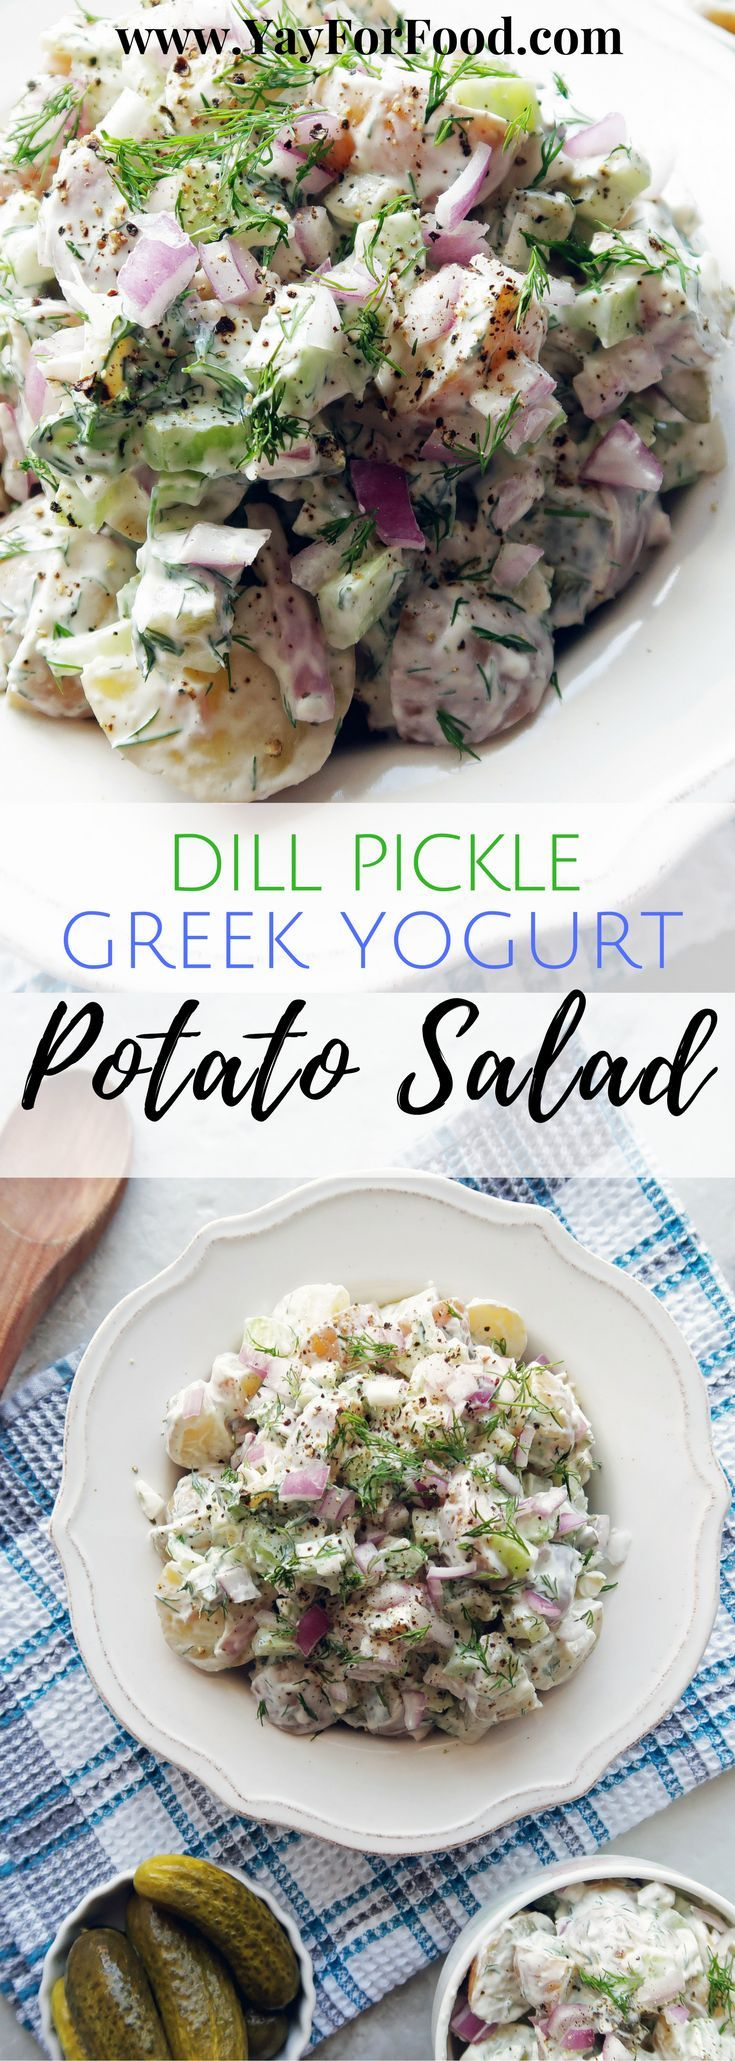 Baby potatoes are combined with sour dill pickles, bold red onions, and sweet celery and then tossed together with a lemony, dill yogurt dressing! side dishes | vegetarian | picnic | potluck | gluten-free